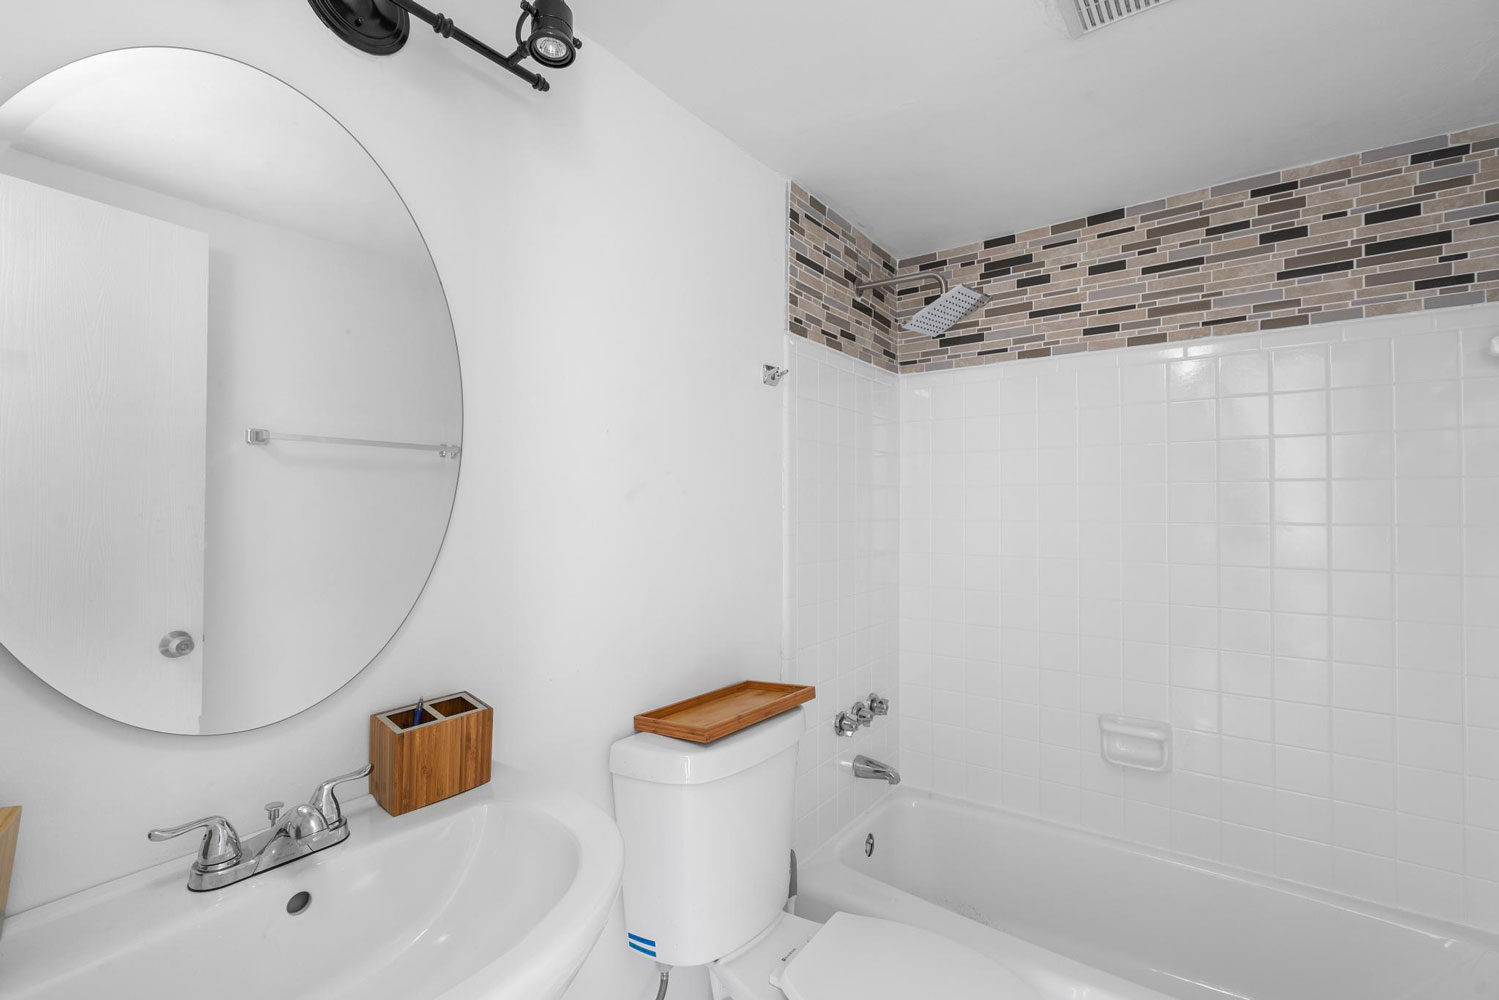 Bathroom Vanity at New Castle Lake Apartments in Miami, FL